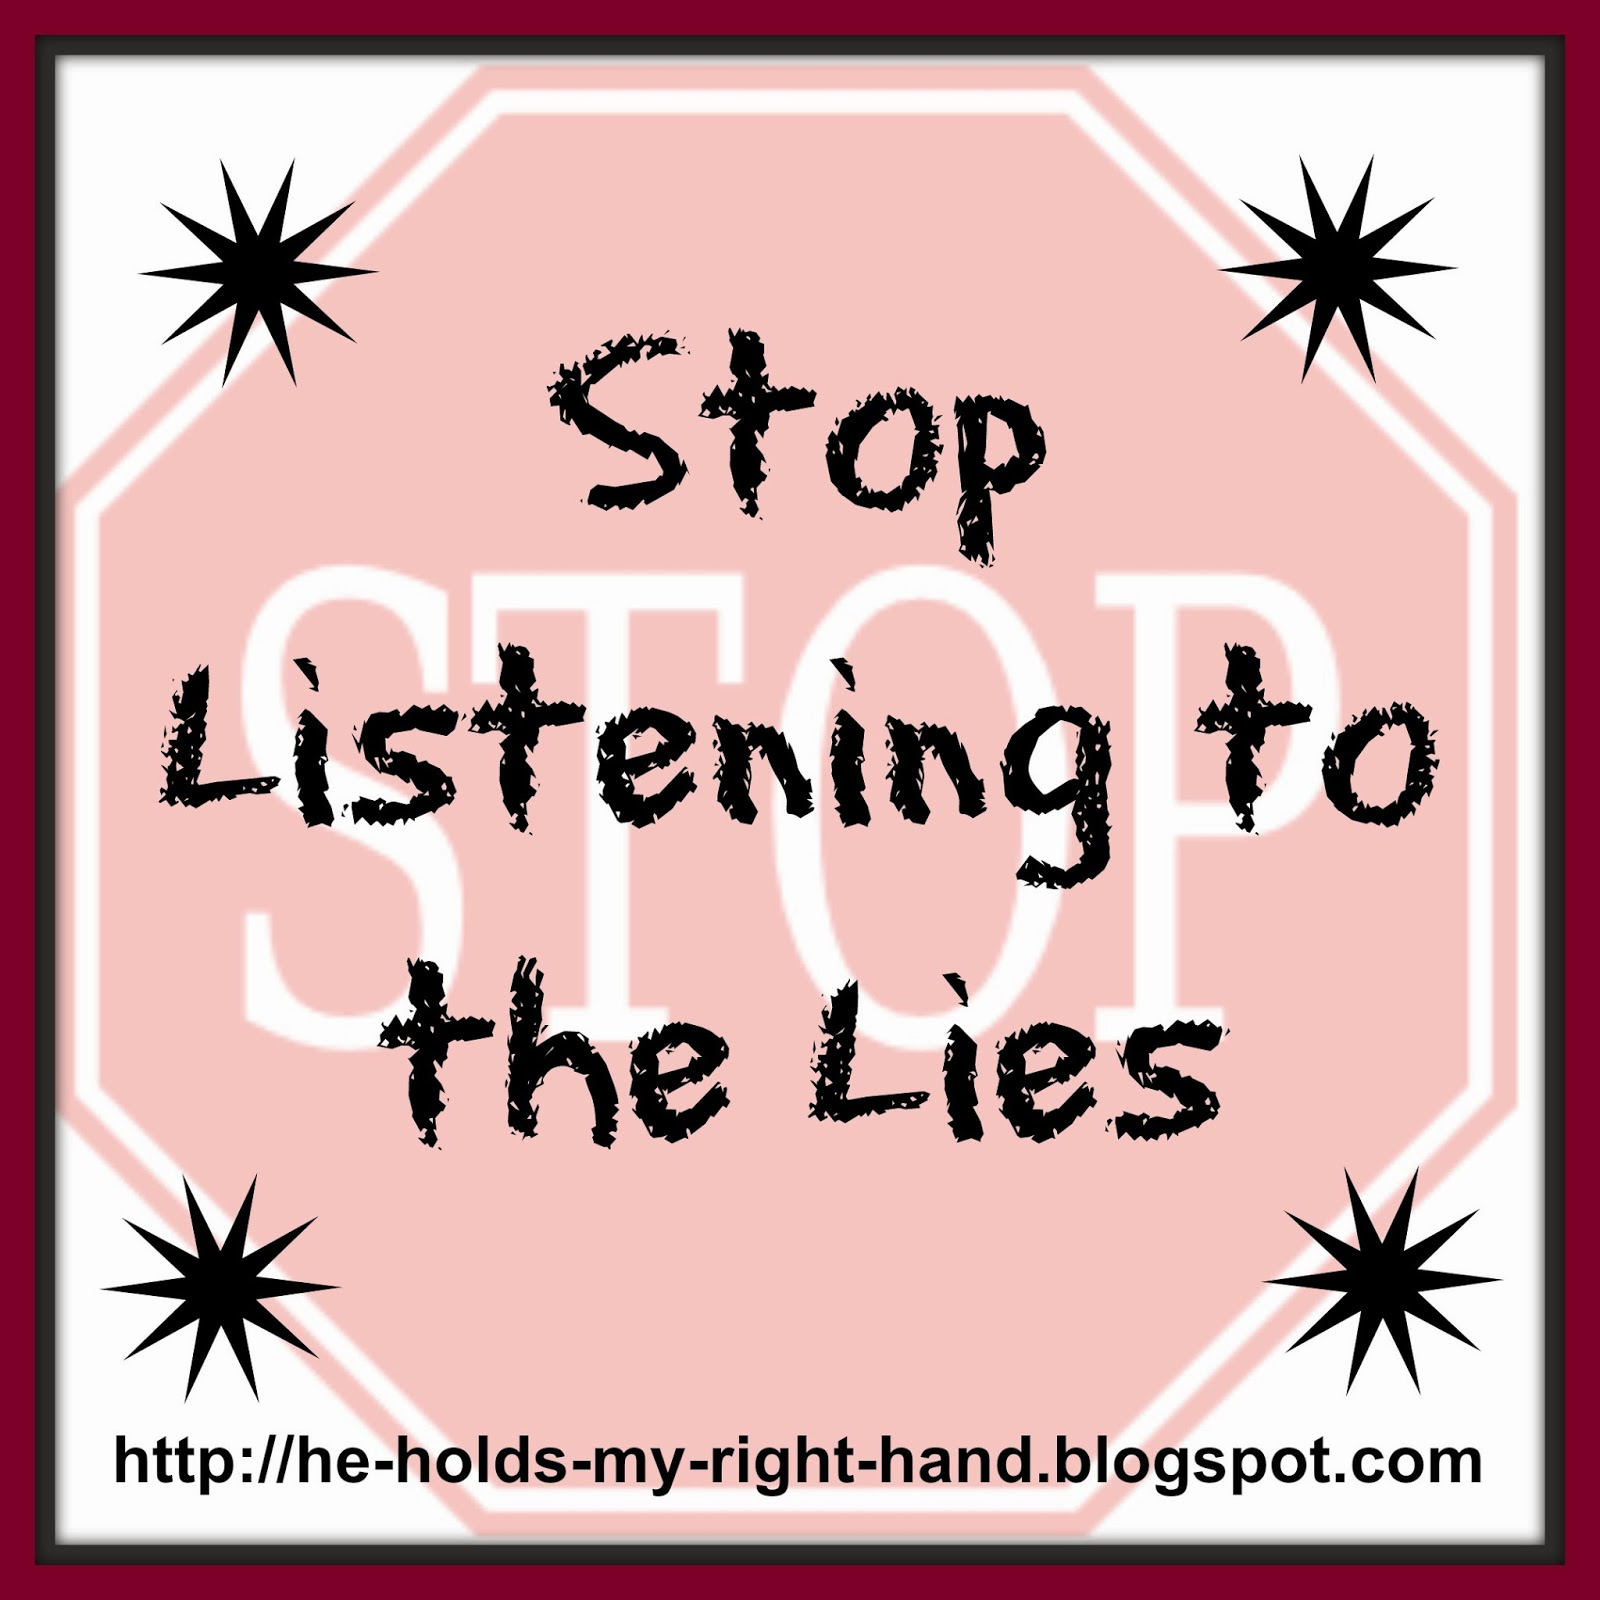 http://www.heholdsmyrighthand.com/2014/09/stop-listening-to-lies.html